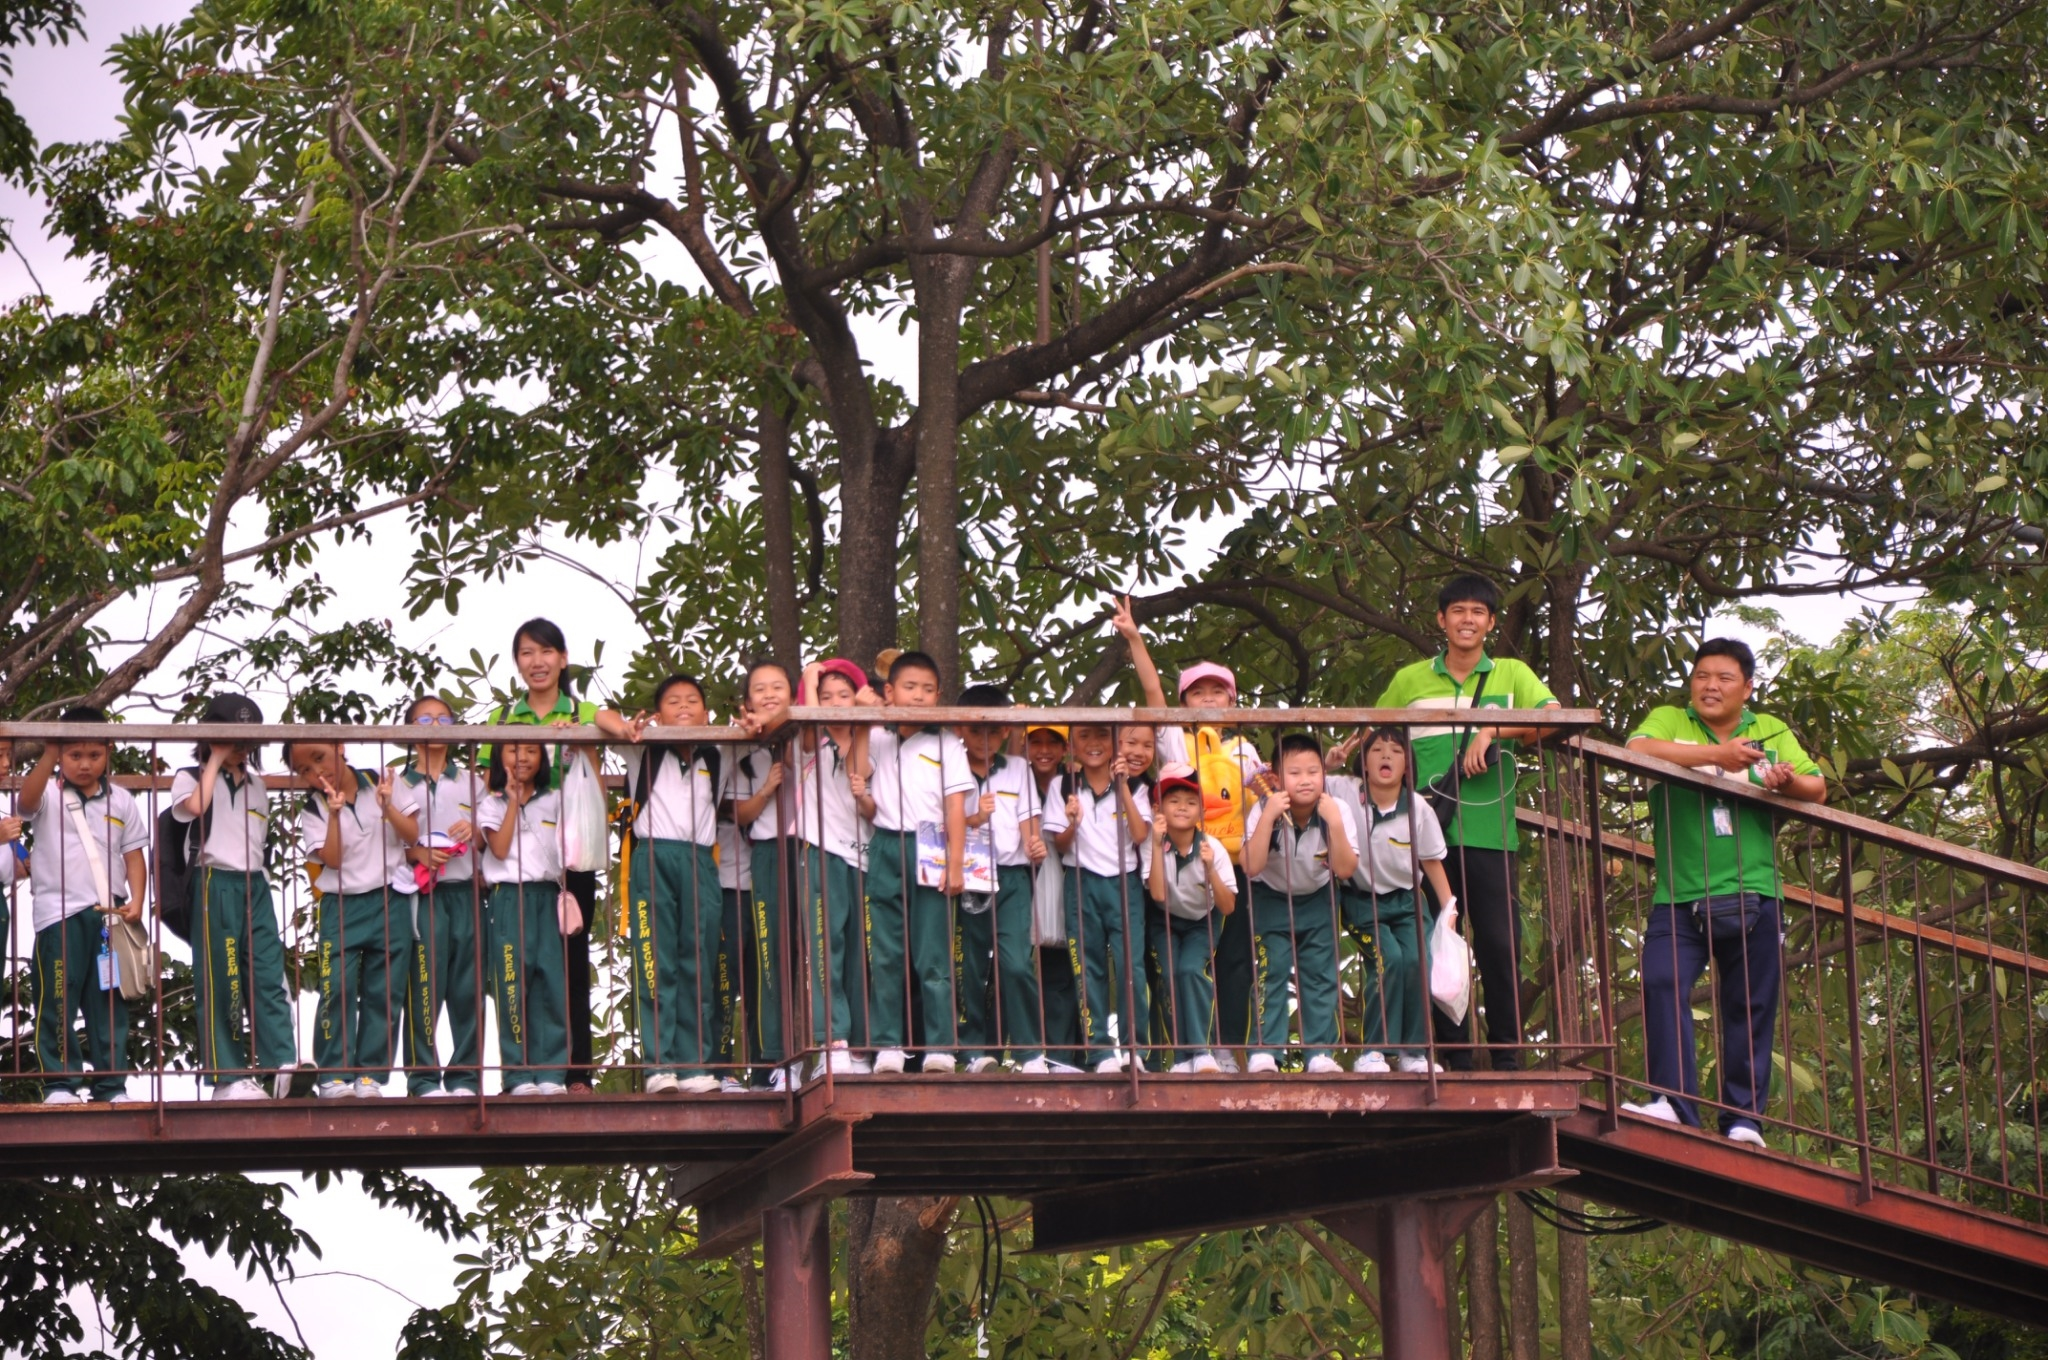 Thursday 22th of August 2019 At 07.30-16.00 : 143 third grade students and 14 teachers went on a field trip at The Golden jubilee Museum of Agriculture Office, Pathumthani Province